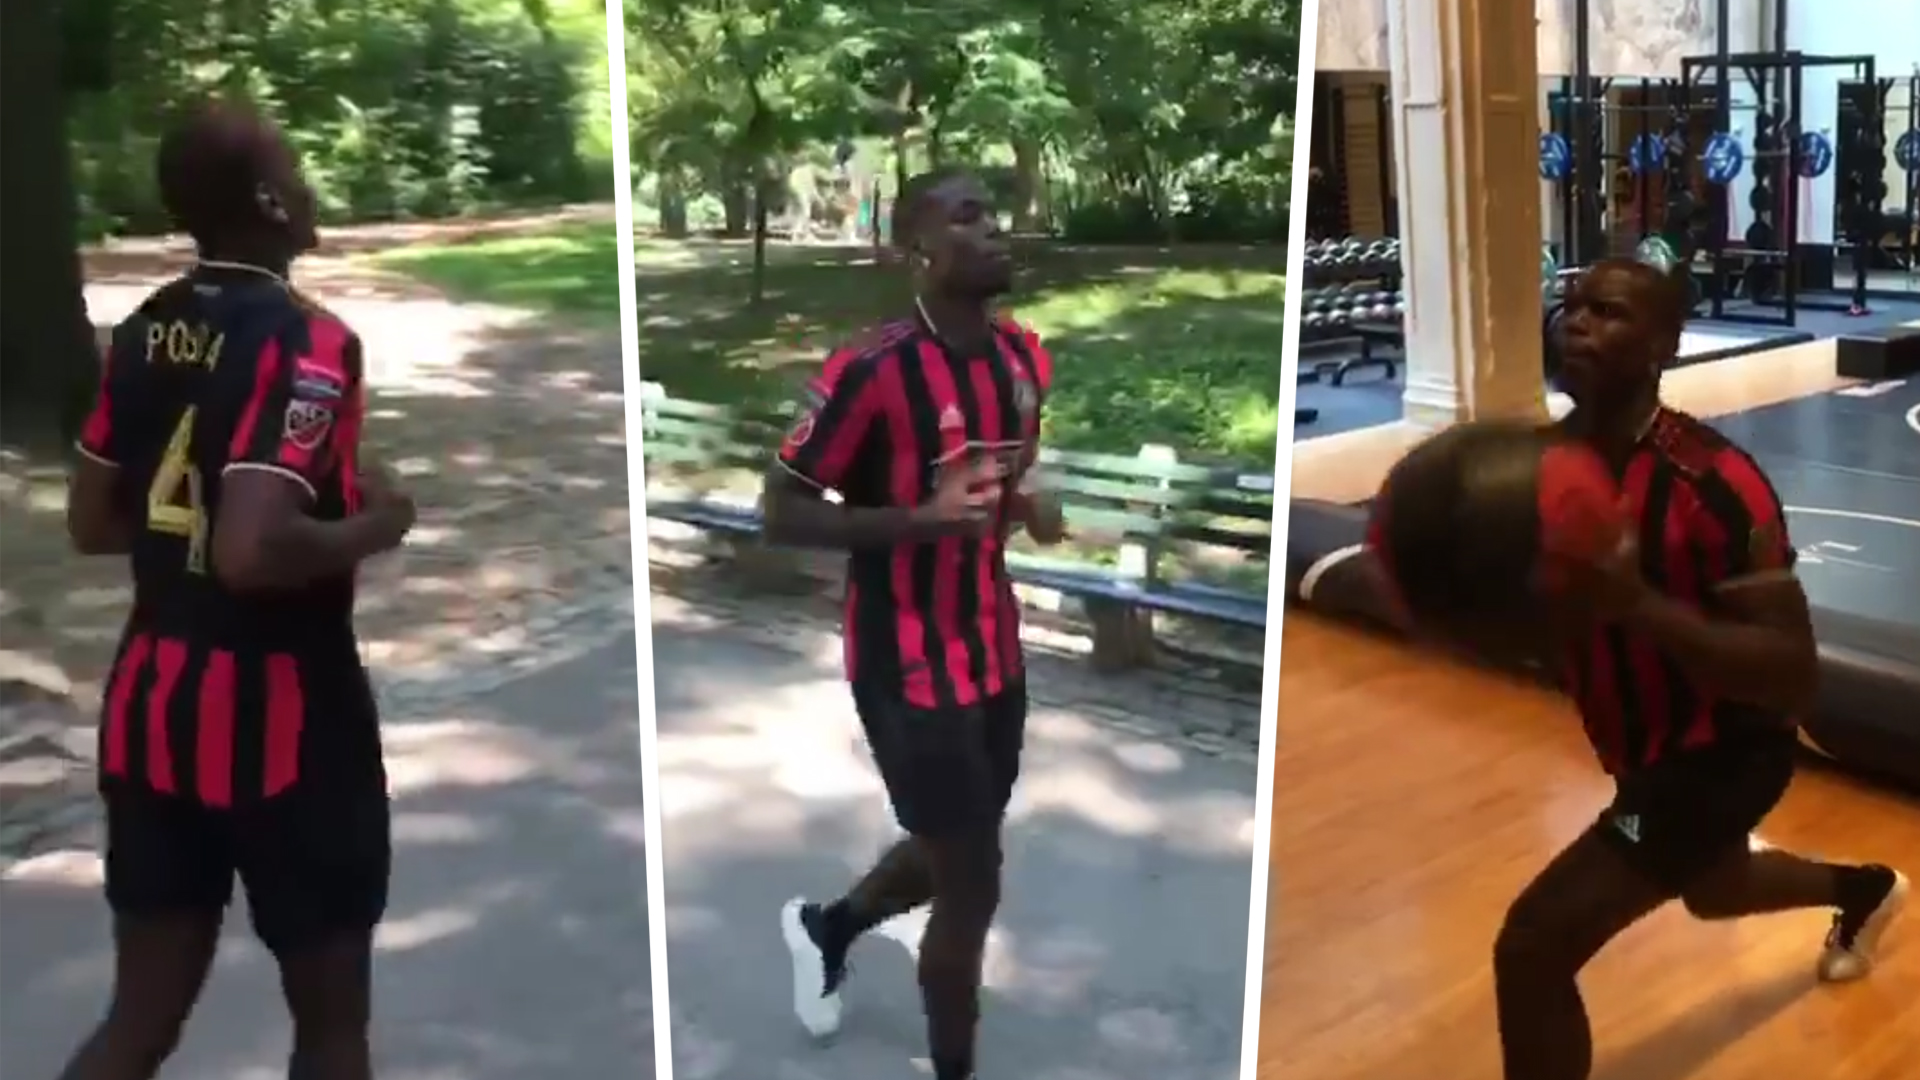 buy popular a061f 79fed Manchester United transfer news: Paul Pogba trains in New ...